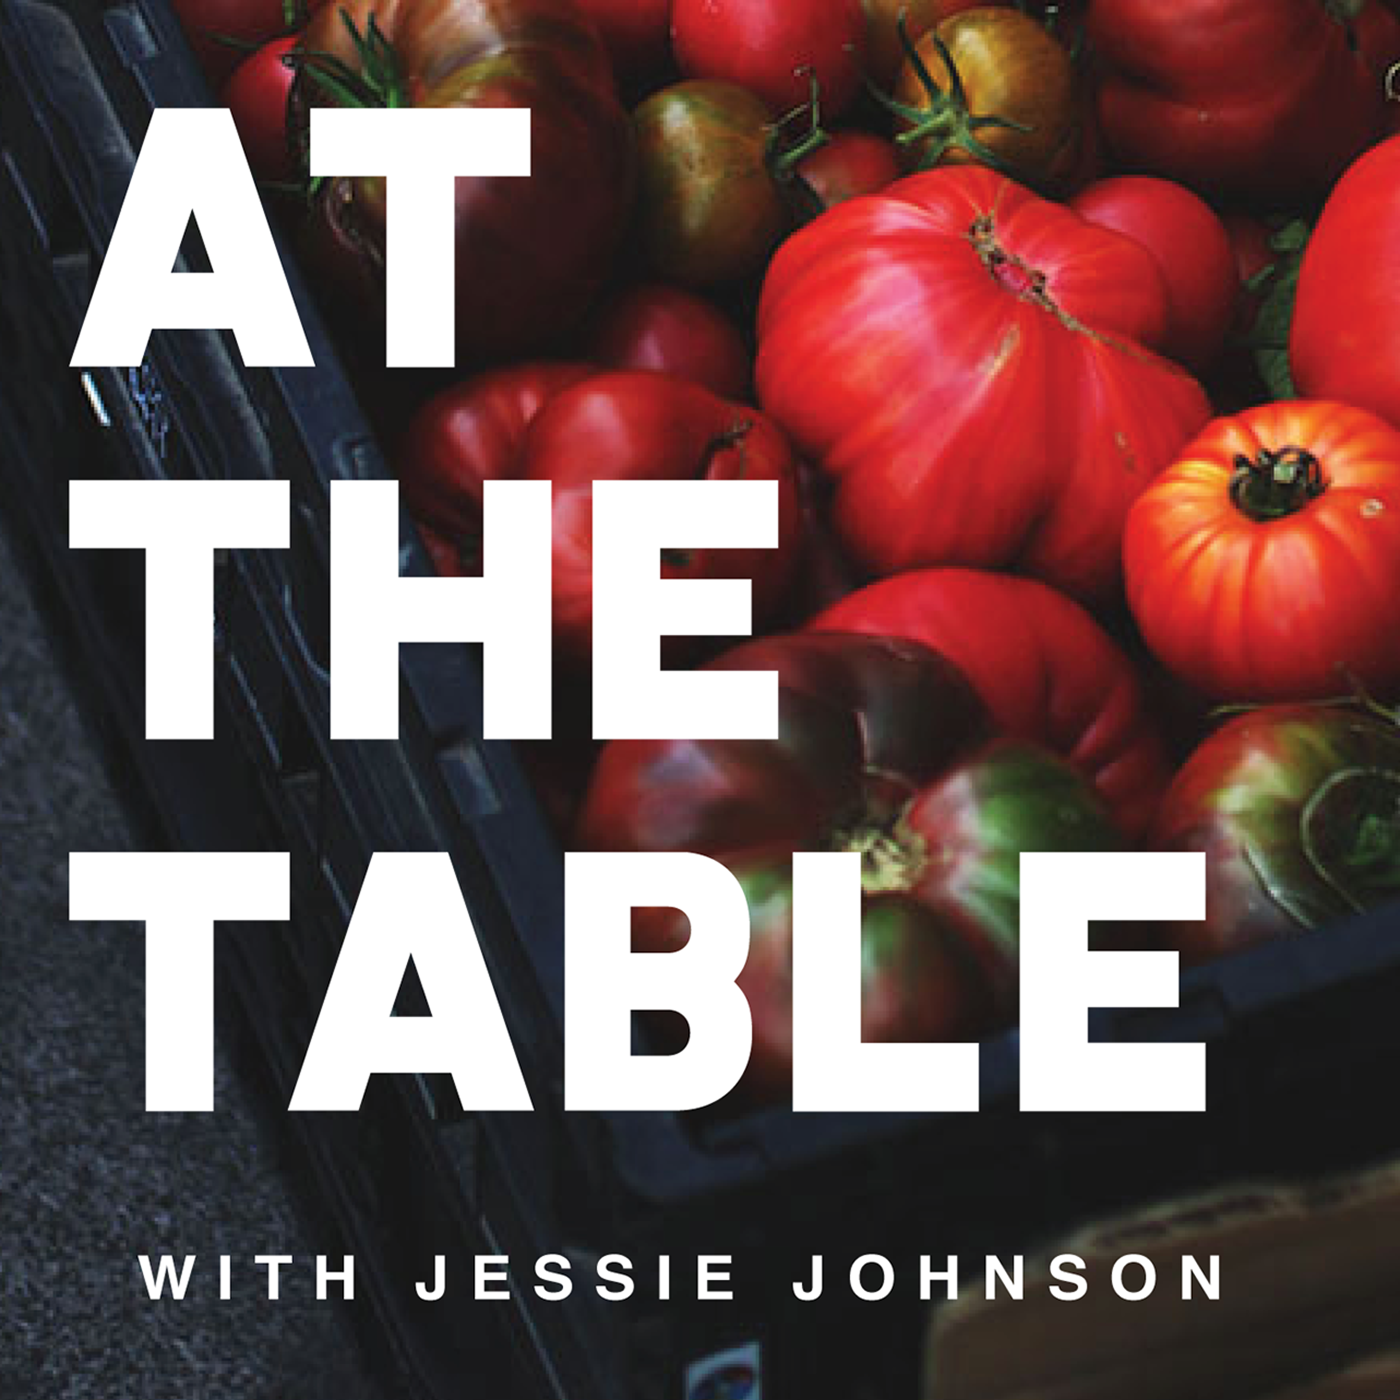 19: Rescuing Food to Fight Hunger with Leah Lizarondo